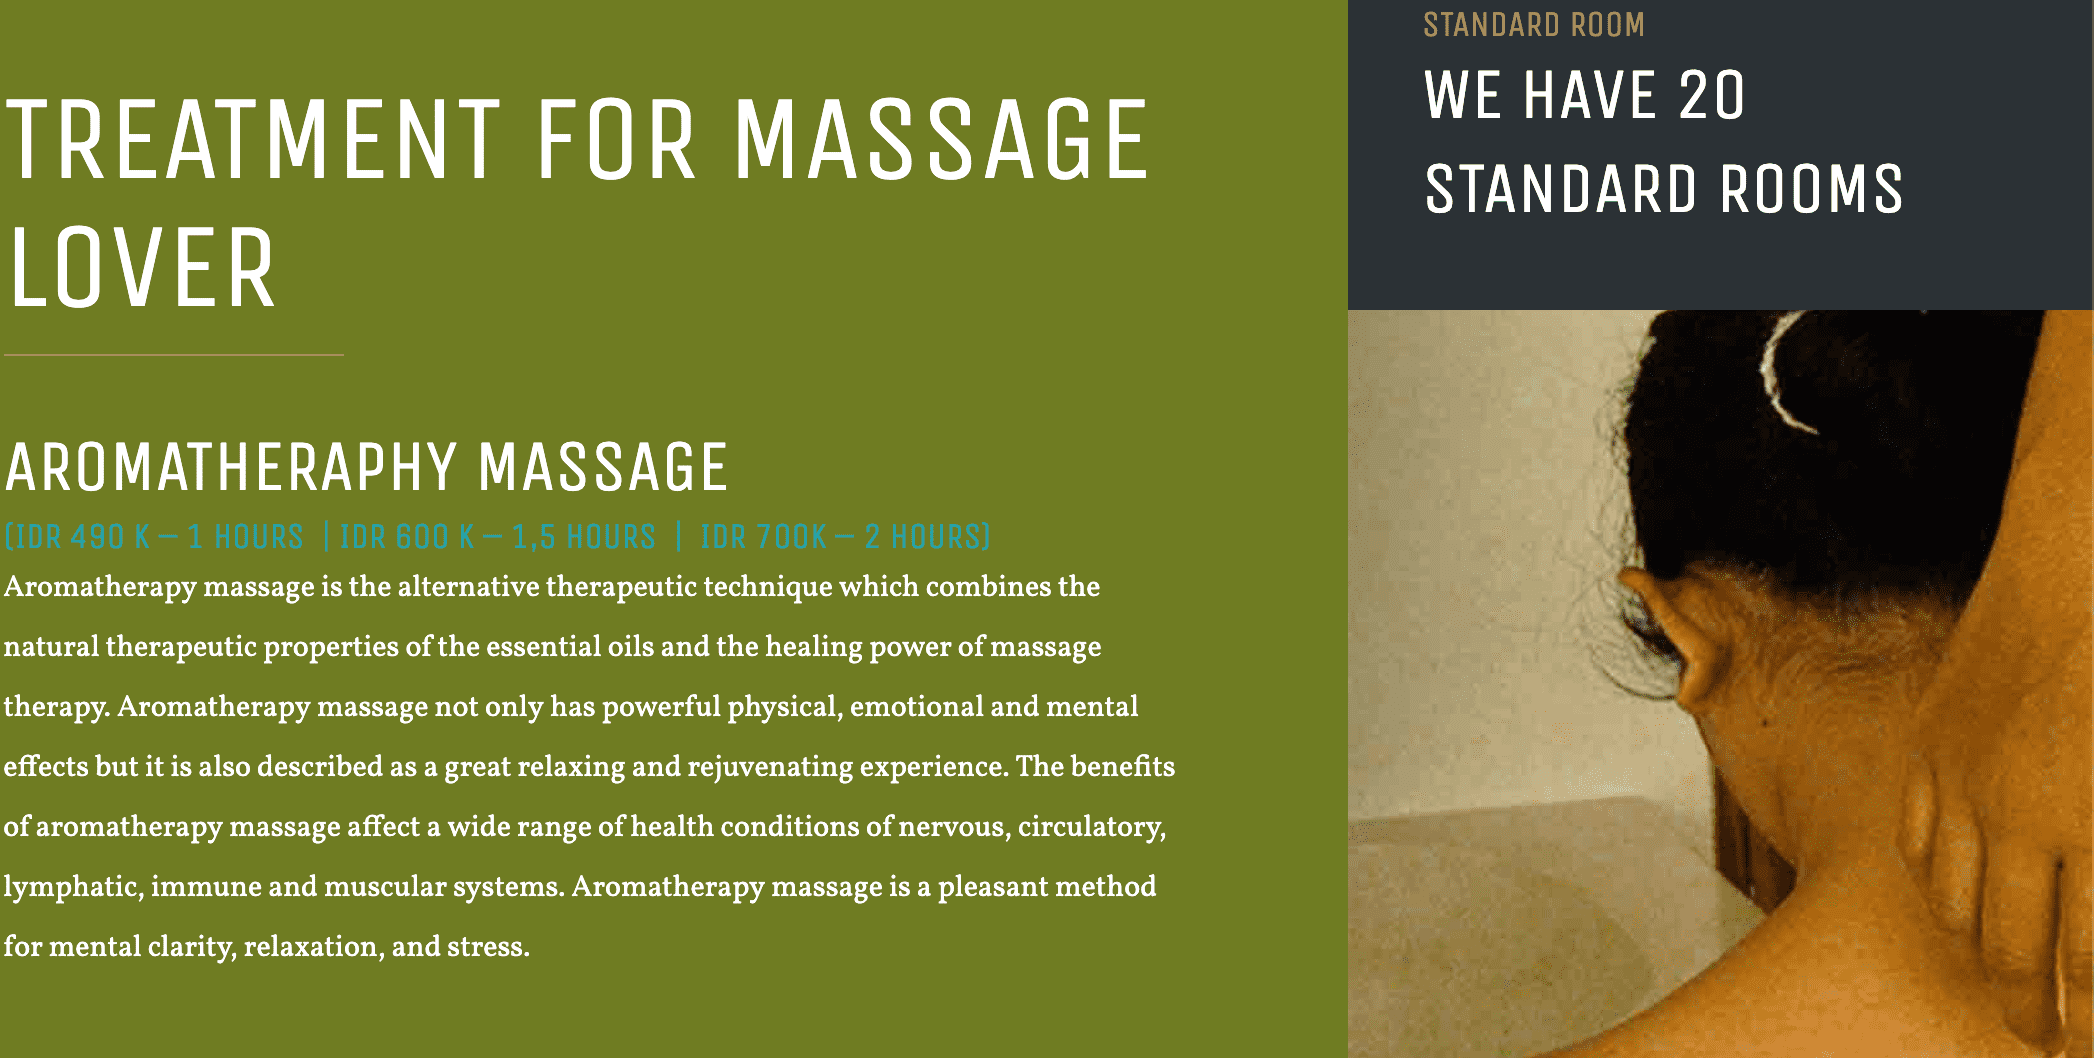 'Aromatherapy massage...combines the natural therapeutic properties of the essential oils and the healing power of massage therapy… [It] is a pleasant method for mental clarity, relaxation, and stress.' - Aromatherapy Massage by Lluvia Spa in Bali.